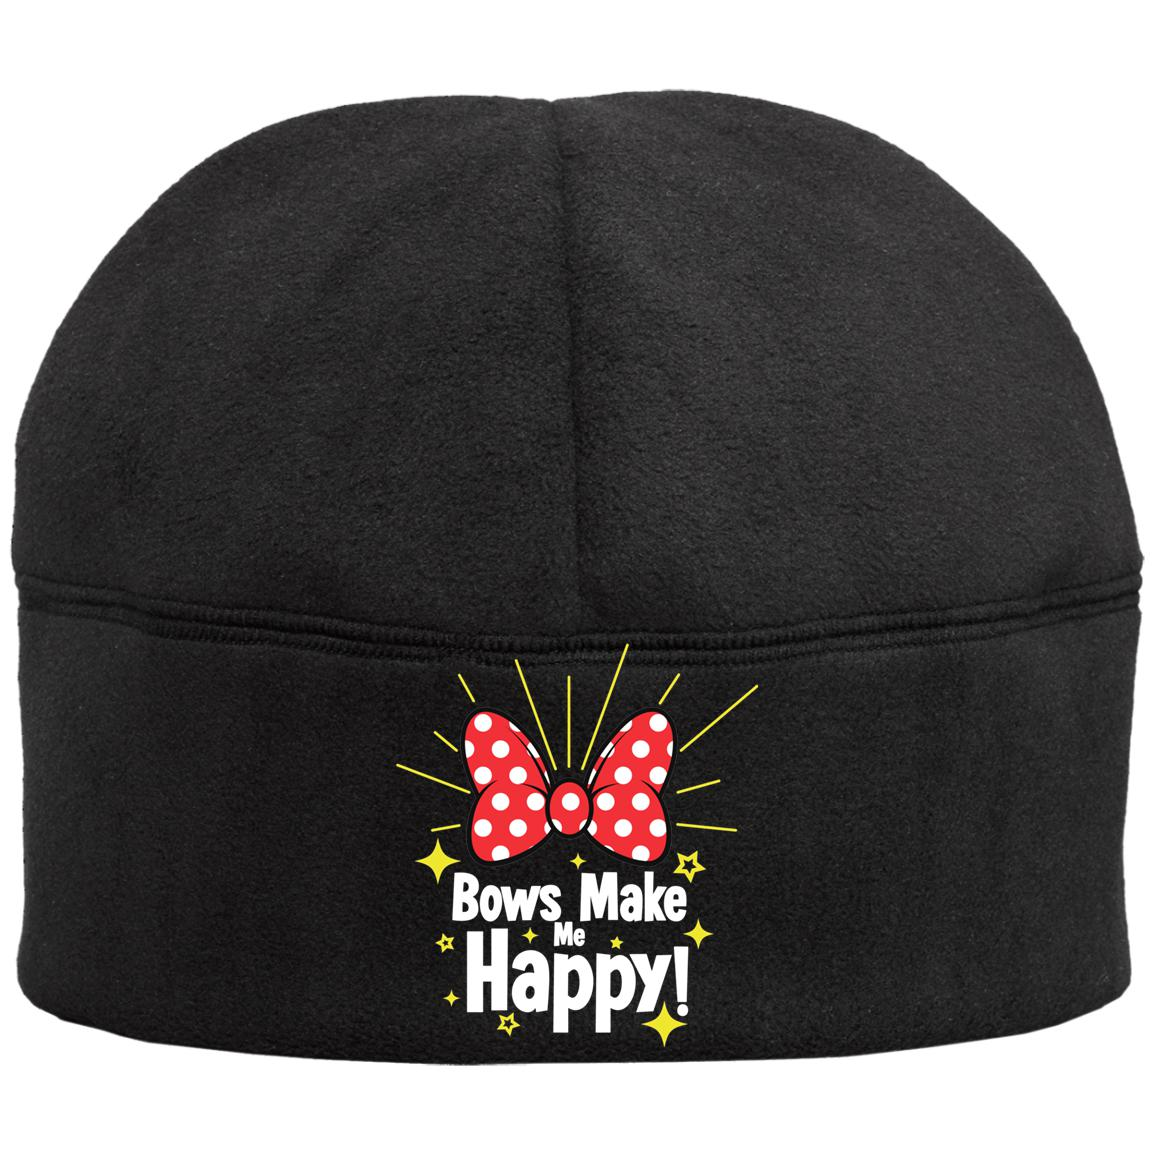 Bows Make Me Happy - Port Authority Fleece Beanie